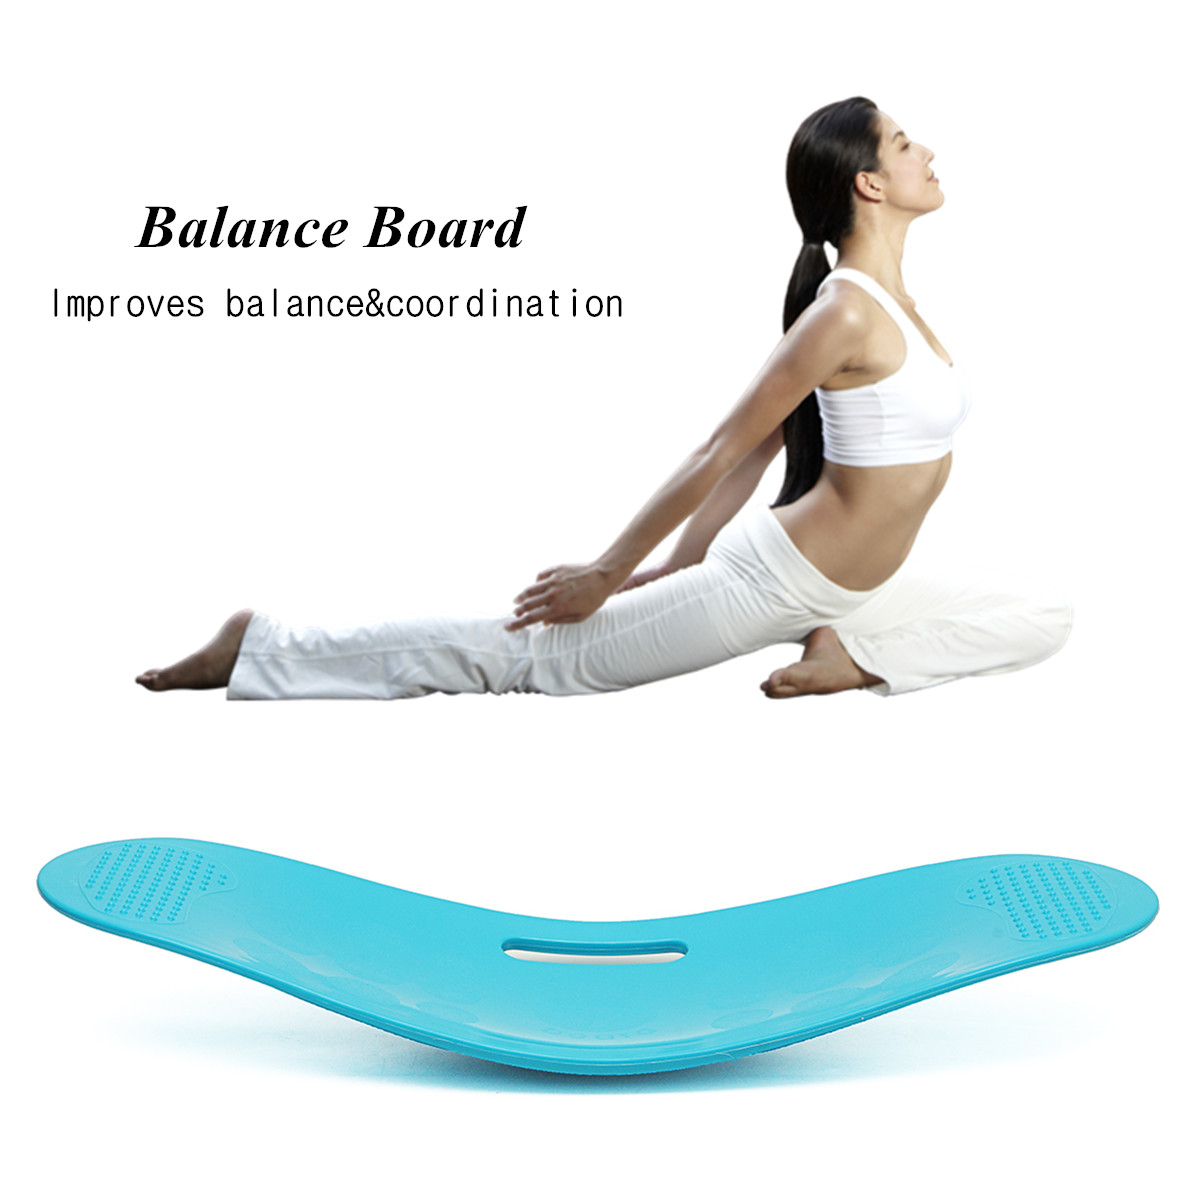 B Board Balance Your Workout: Fitness Exercise Boards Simply Fit Unisex Balance Board